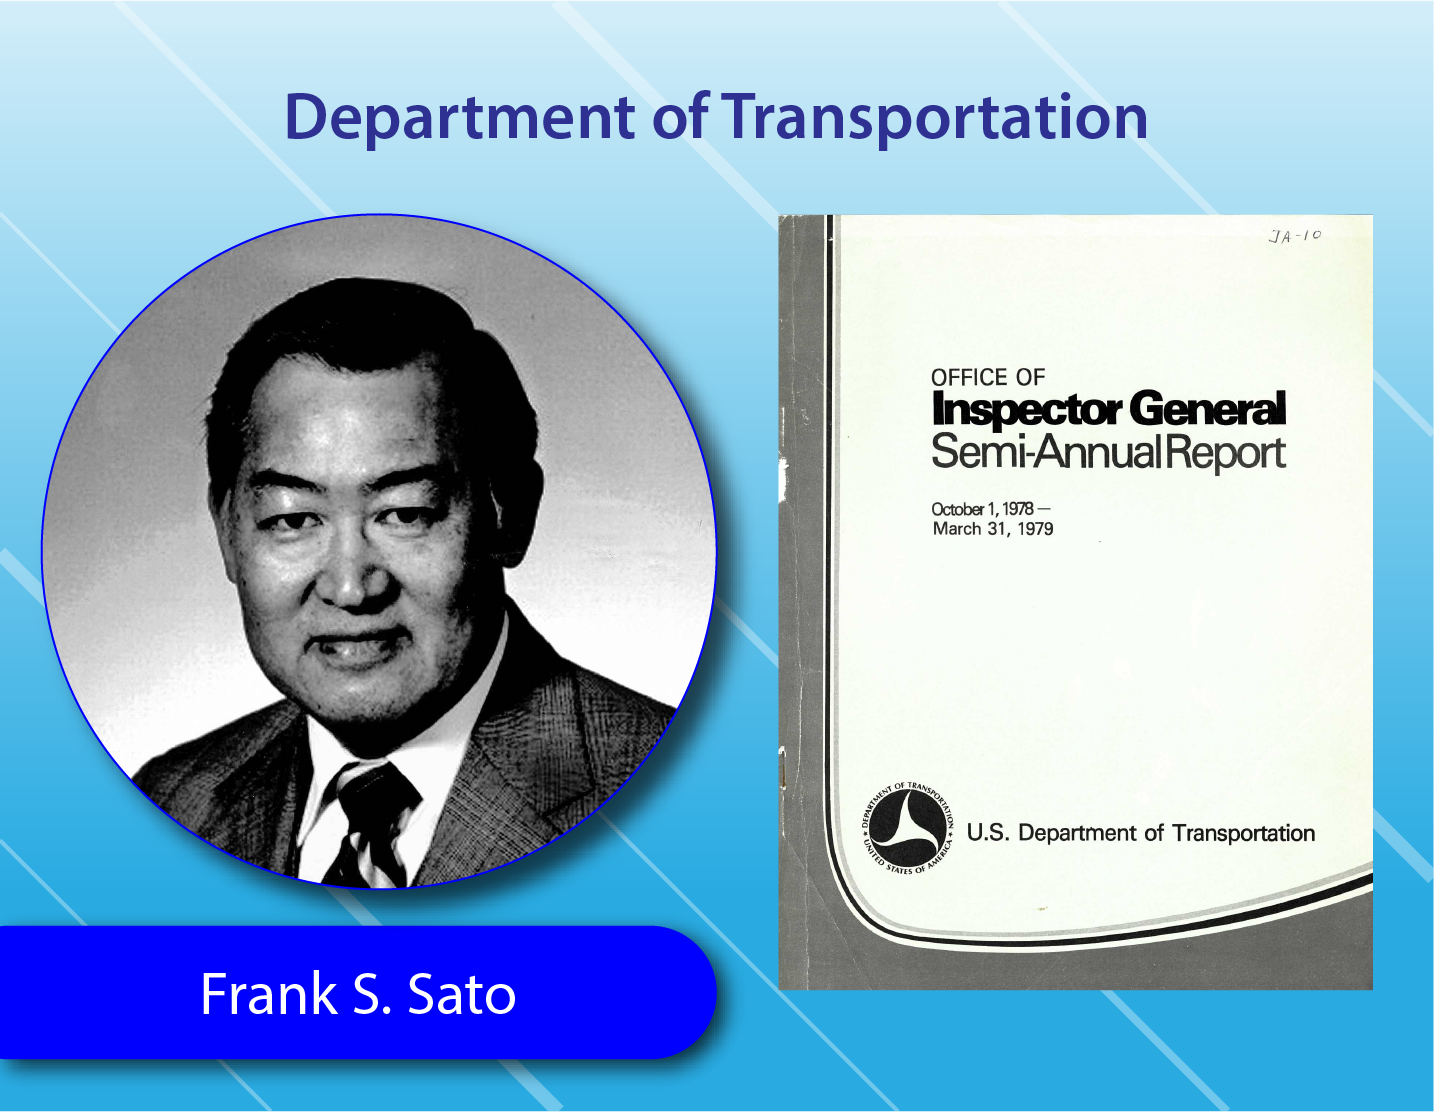 Department of Transportation - Frank S. Sato